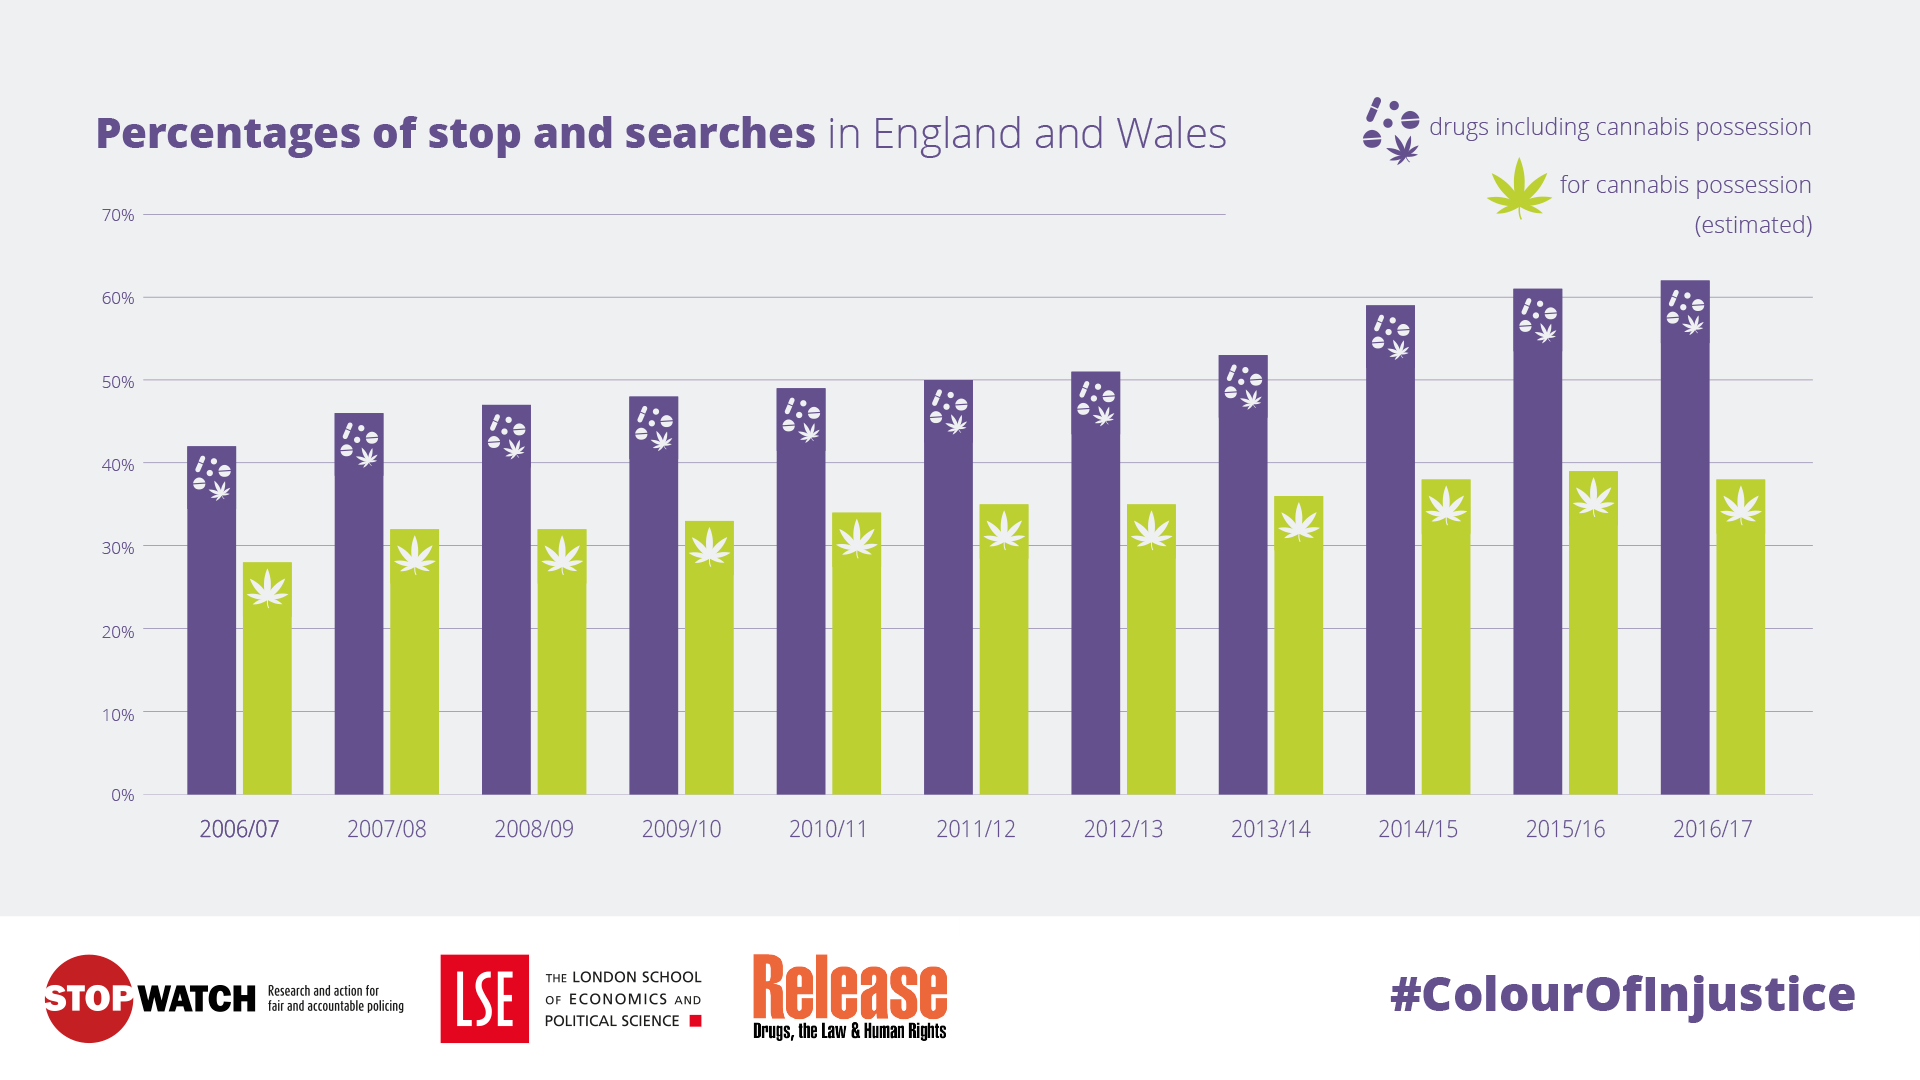 60% of all stop and searches in England and Wales are for drugs. A third of all searches are for cannabis possession only.